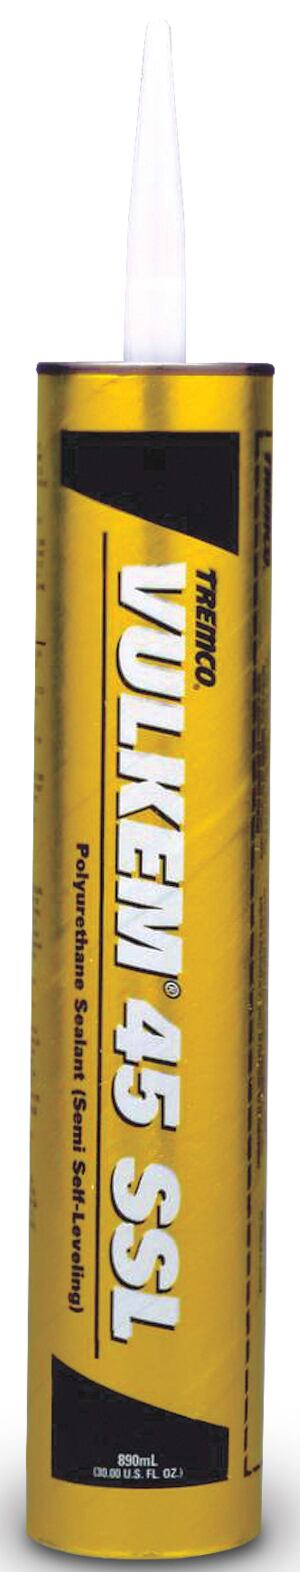 Vulkem 45 joint sealantTremcowww.tremcosealants.com  One-part polyurethane sealant allows next-day application to joints in concrete slabs    Eliminates green cracking as the concrete cures    Developed for level surfaces or those that are sloped up to 6 percent, such as sidewalks, pool decks, and parking decks    Uses the moisture in damp or green concrete to cure    Available in gray, limestone, white, black, and buff